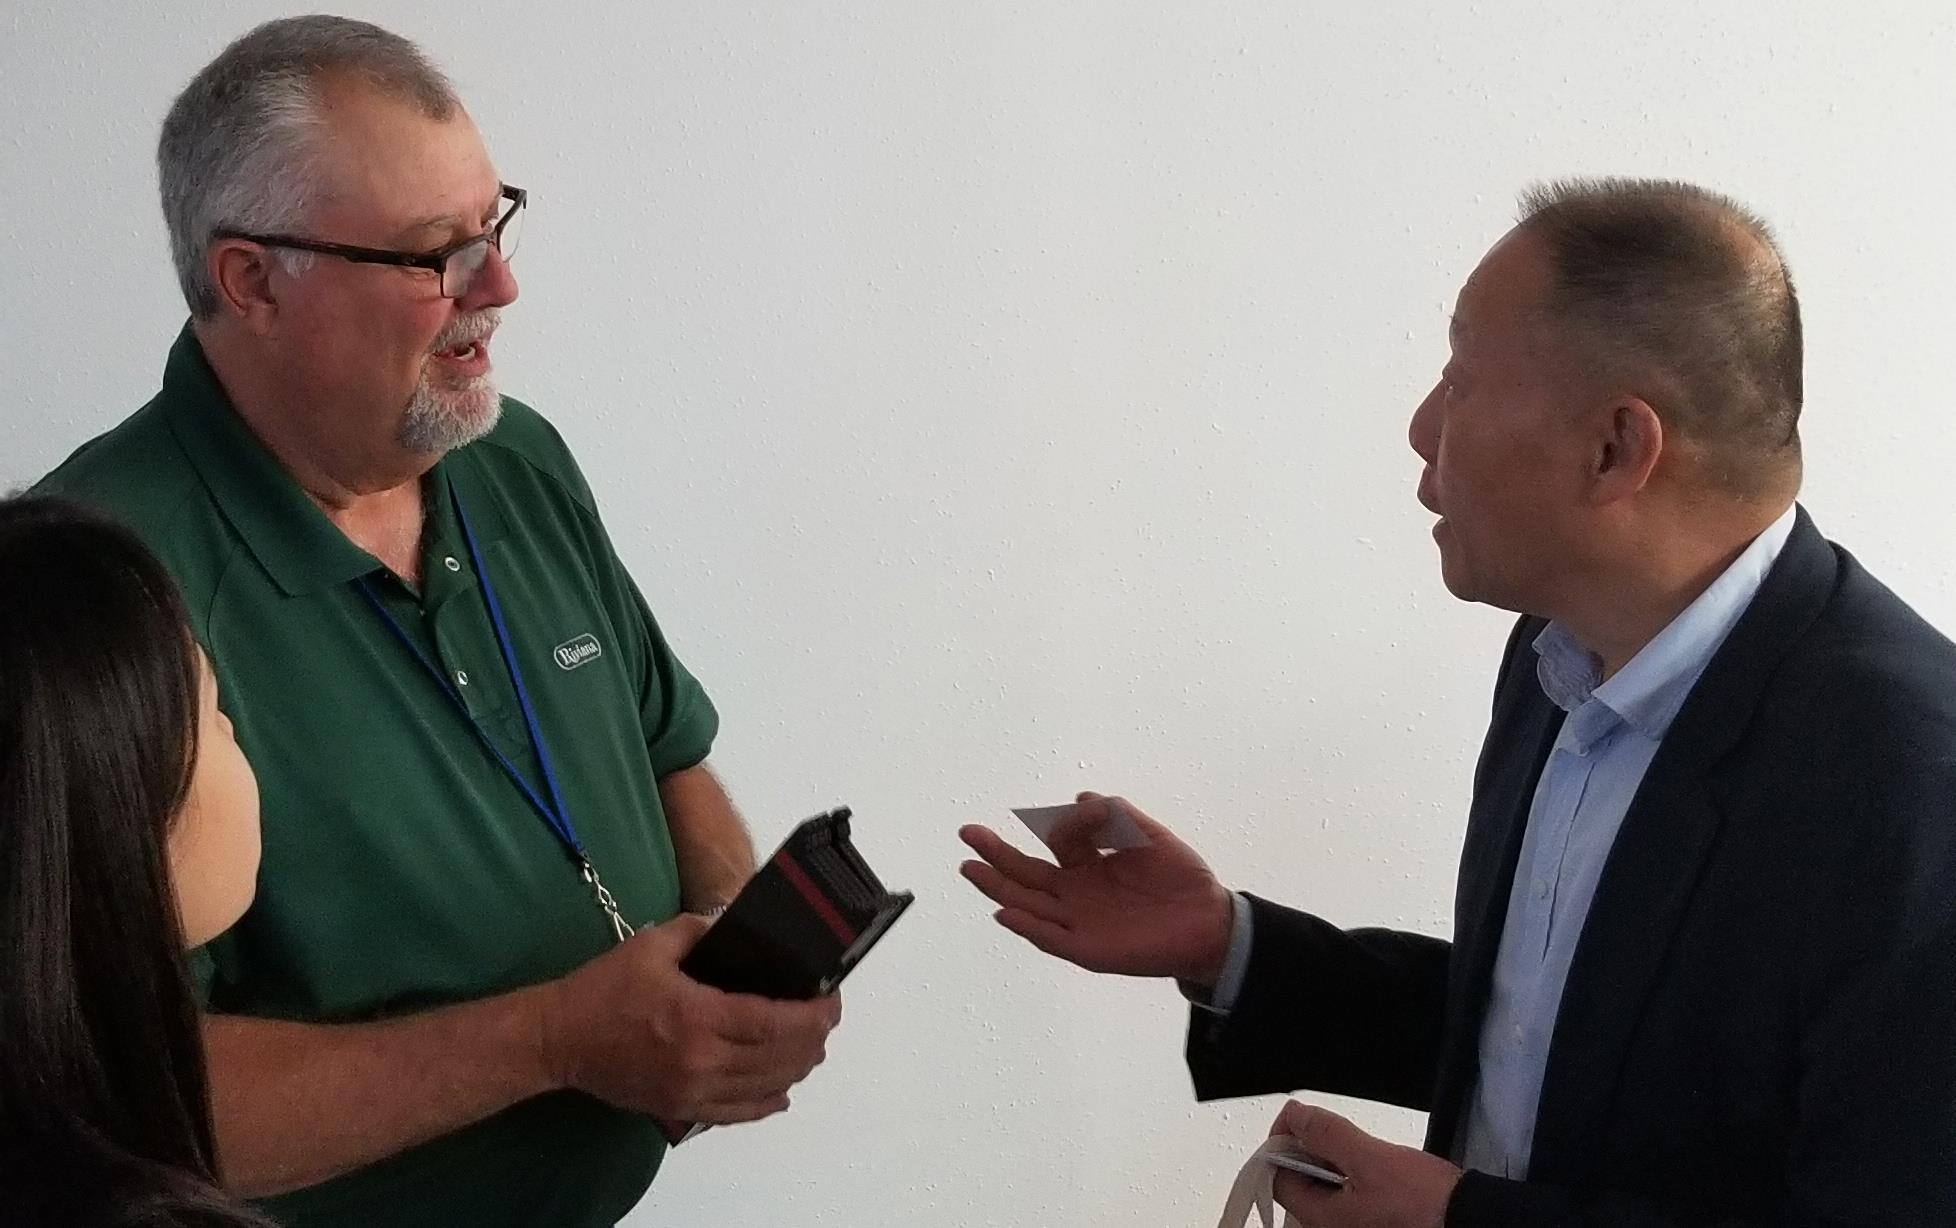 Two men stand face-to-face exchanging gifts and business cards, person recording video on cellphone in foreground